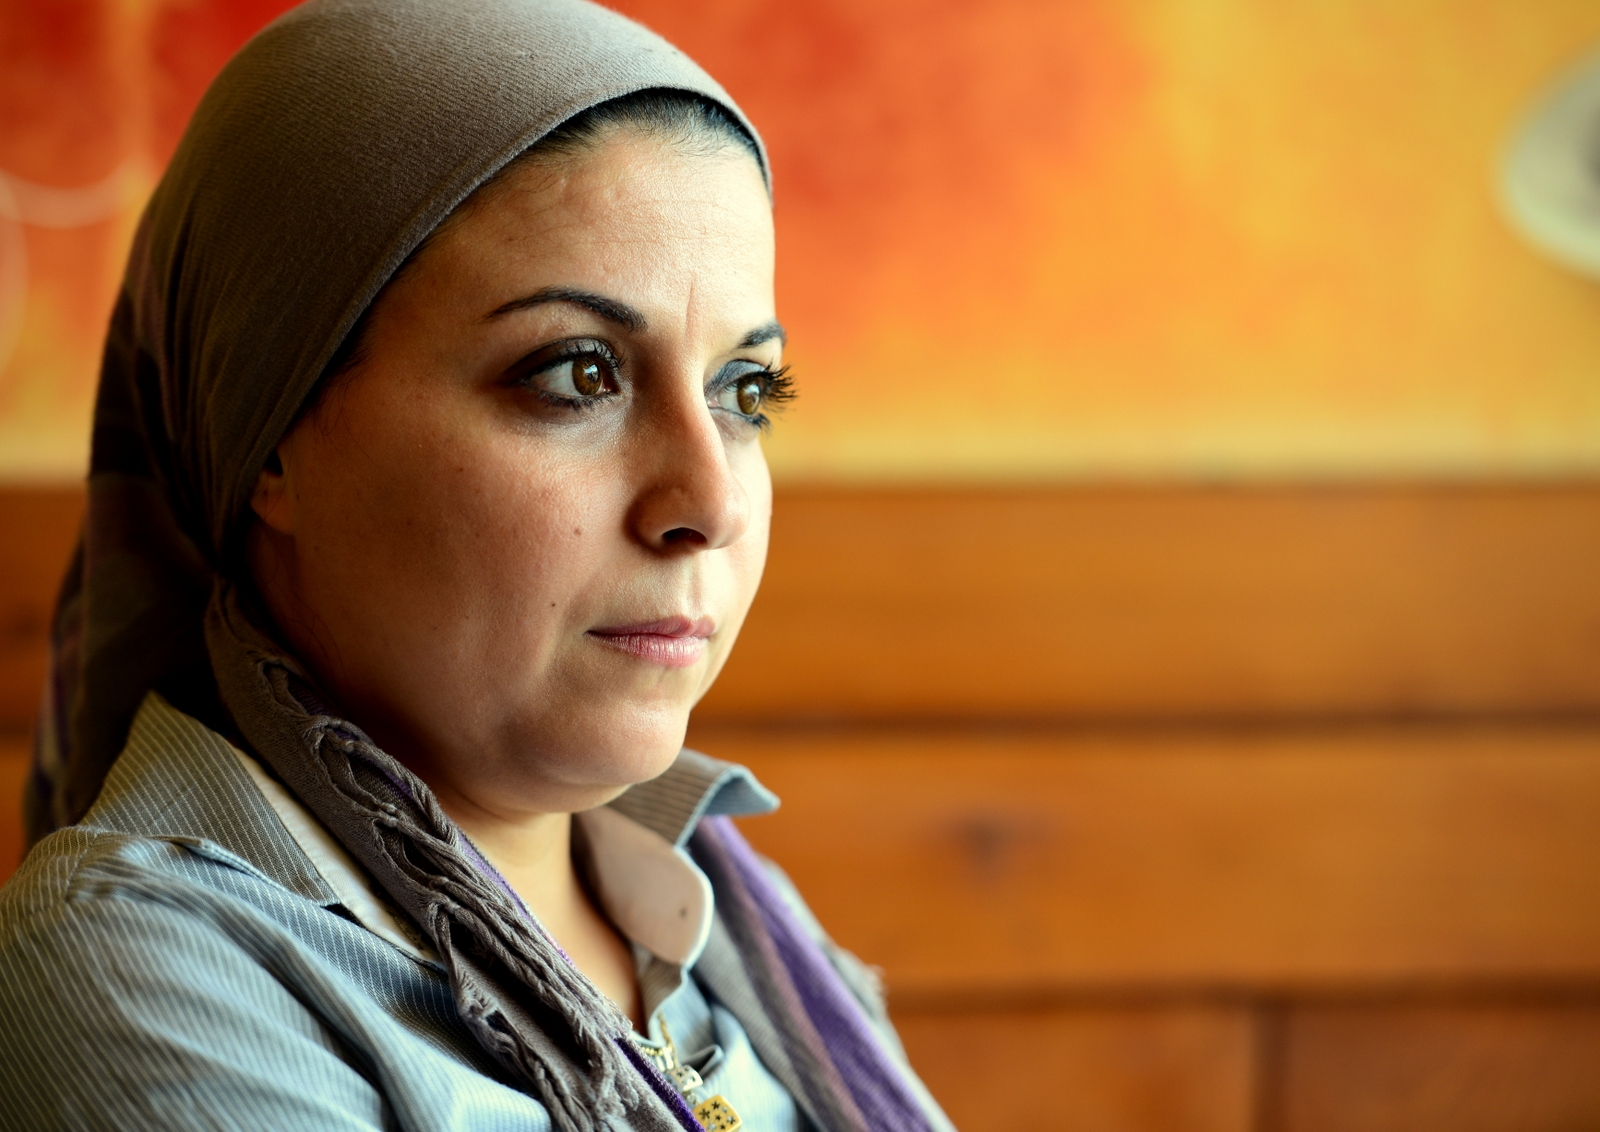 Esraa Abdel Fatah denied recent claims by the media that she is under investigation by the prosecutor general for espionage.